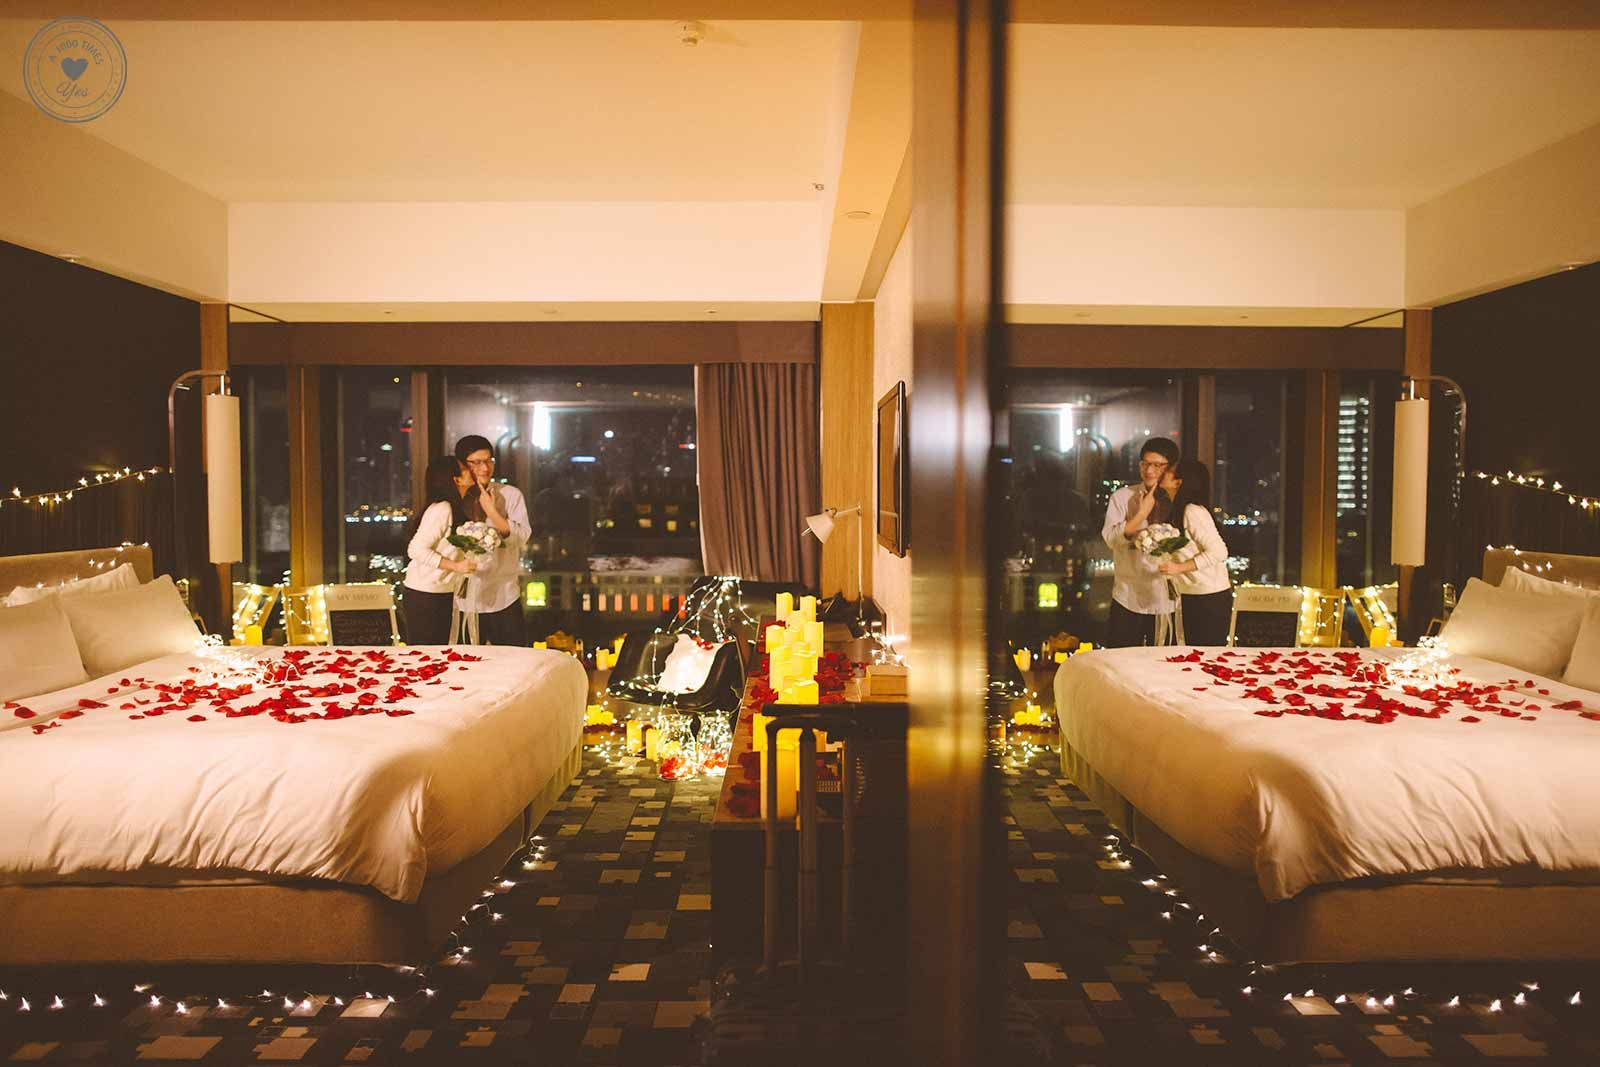 Romantic room with roses - Romantic Marriage Proposals Hong Kong Hotel Room Bower Of Bliss Proposing In Your Hotel